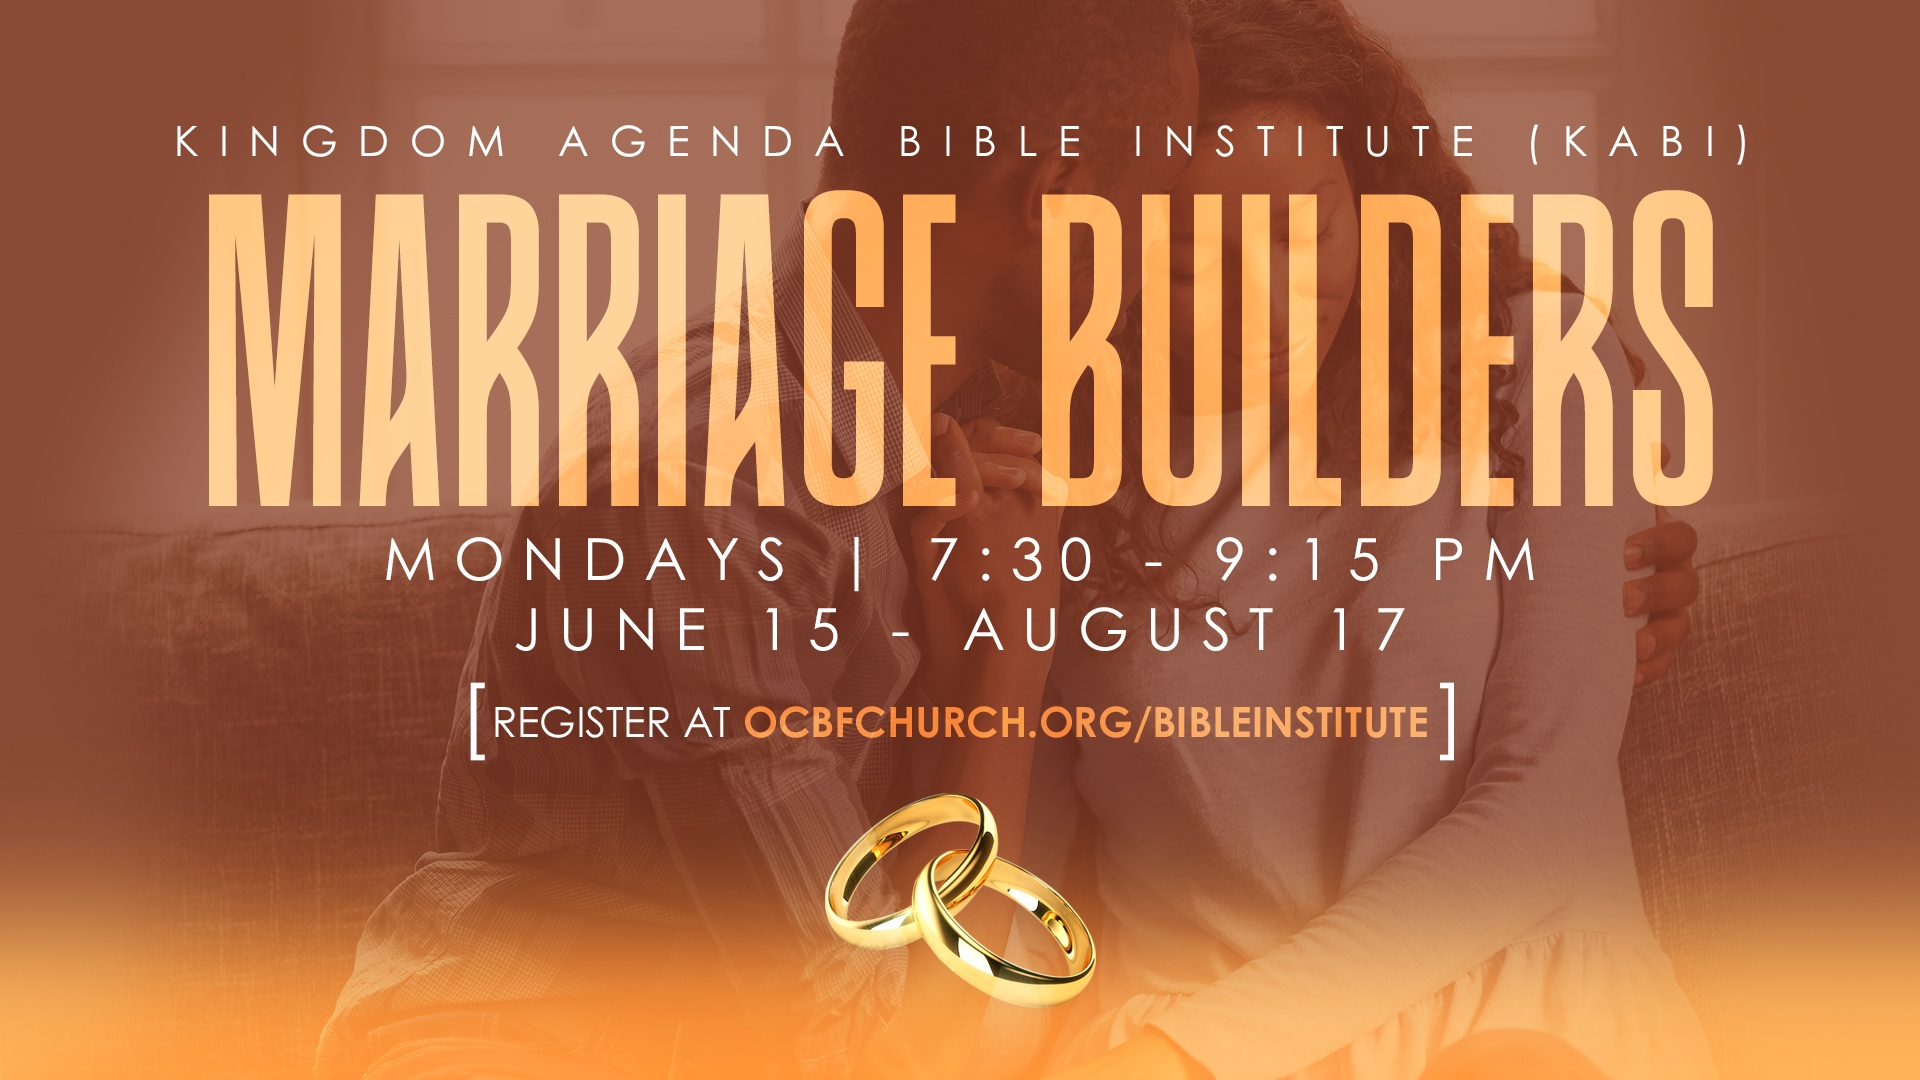 Marriage Builders course - Kingdom Agenda Bible Institute